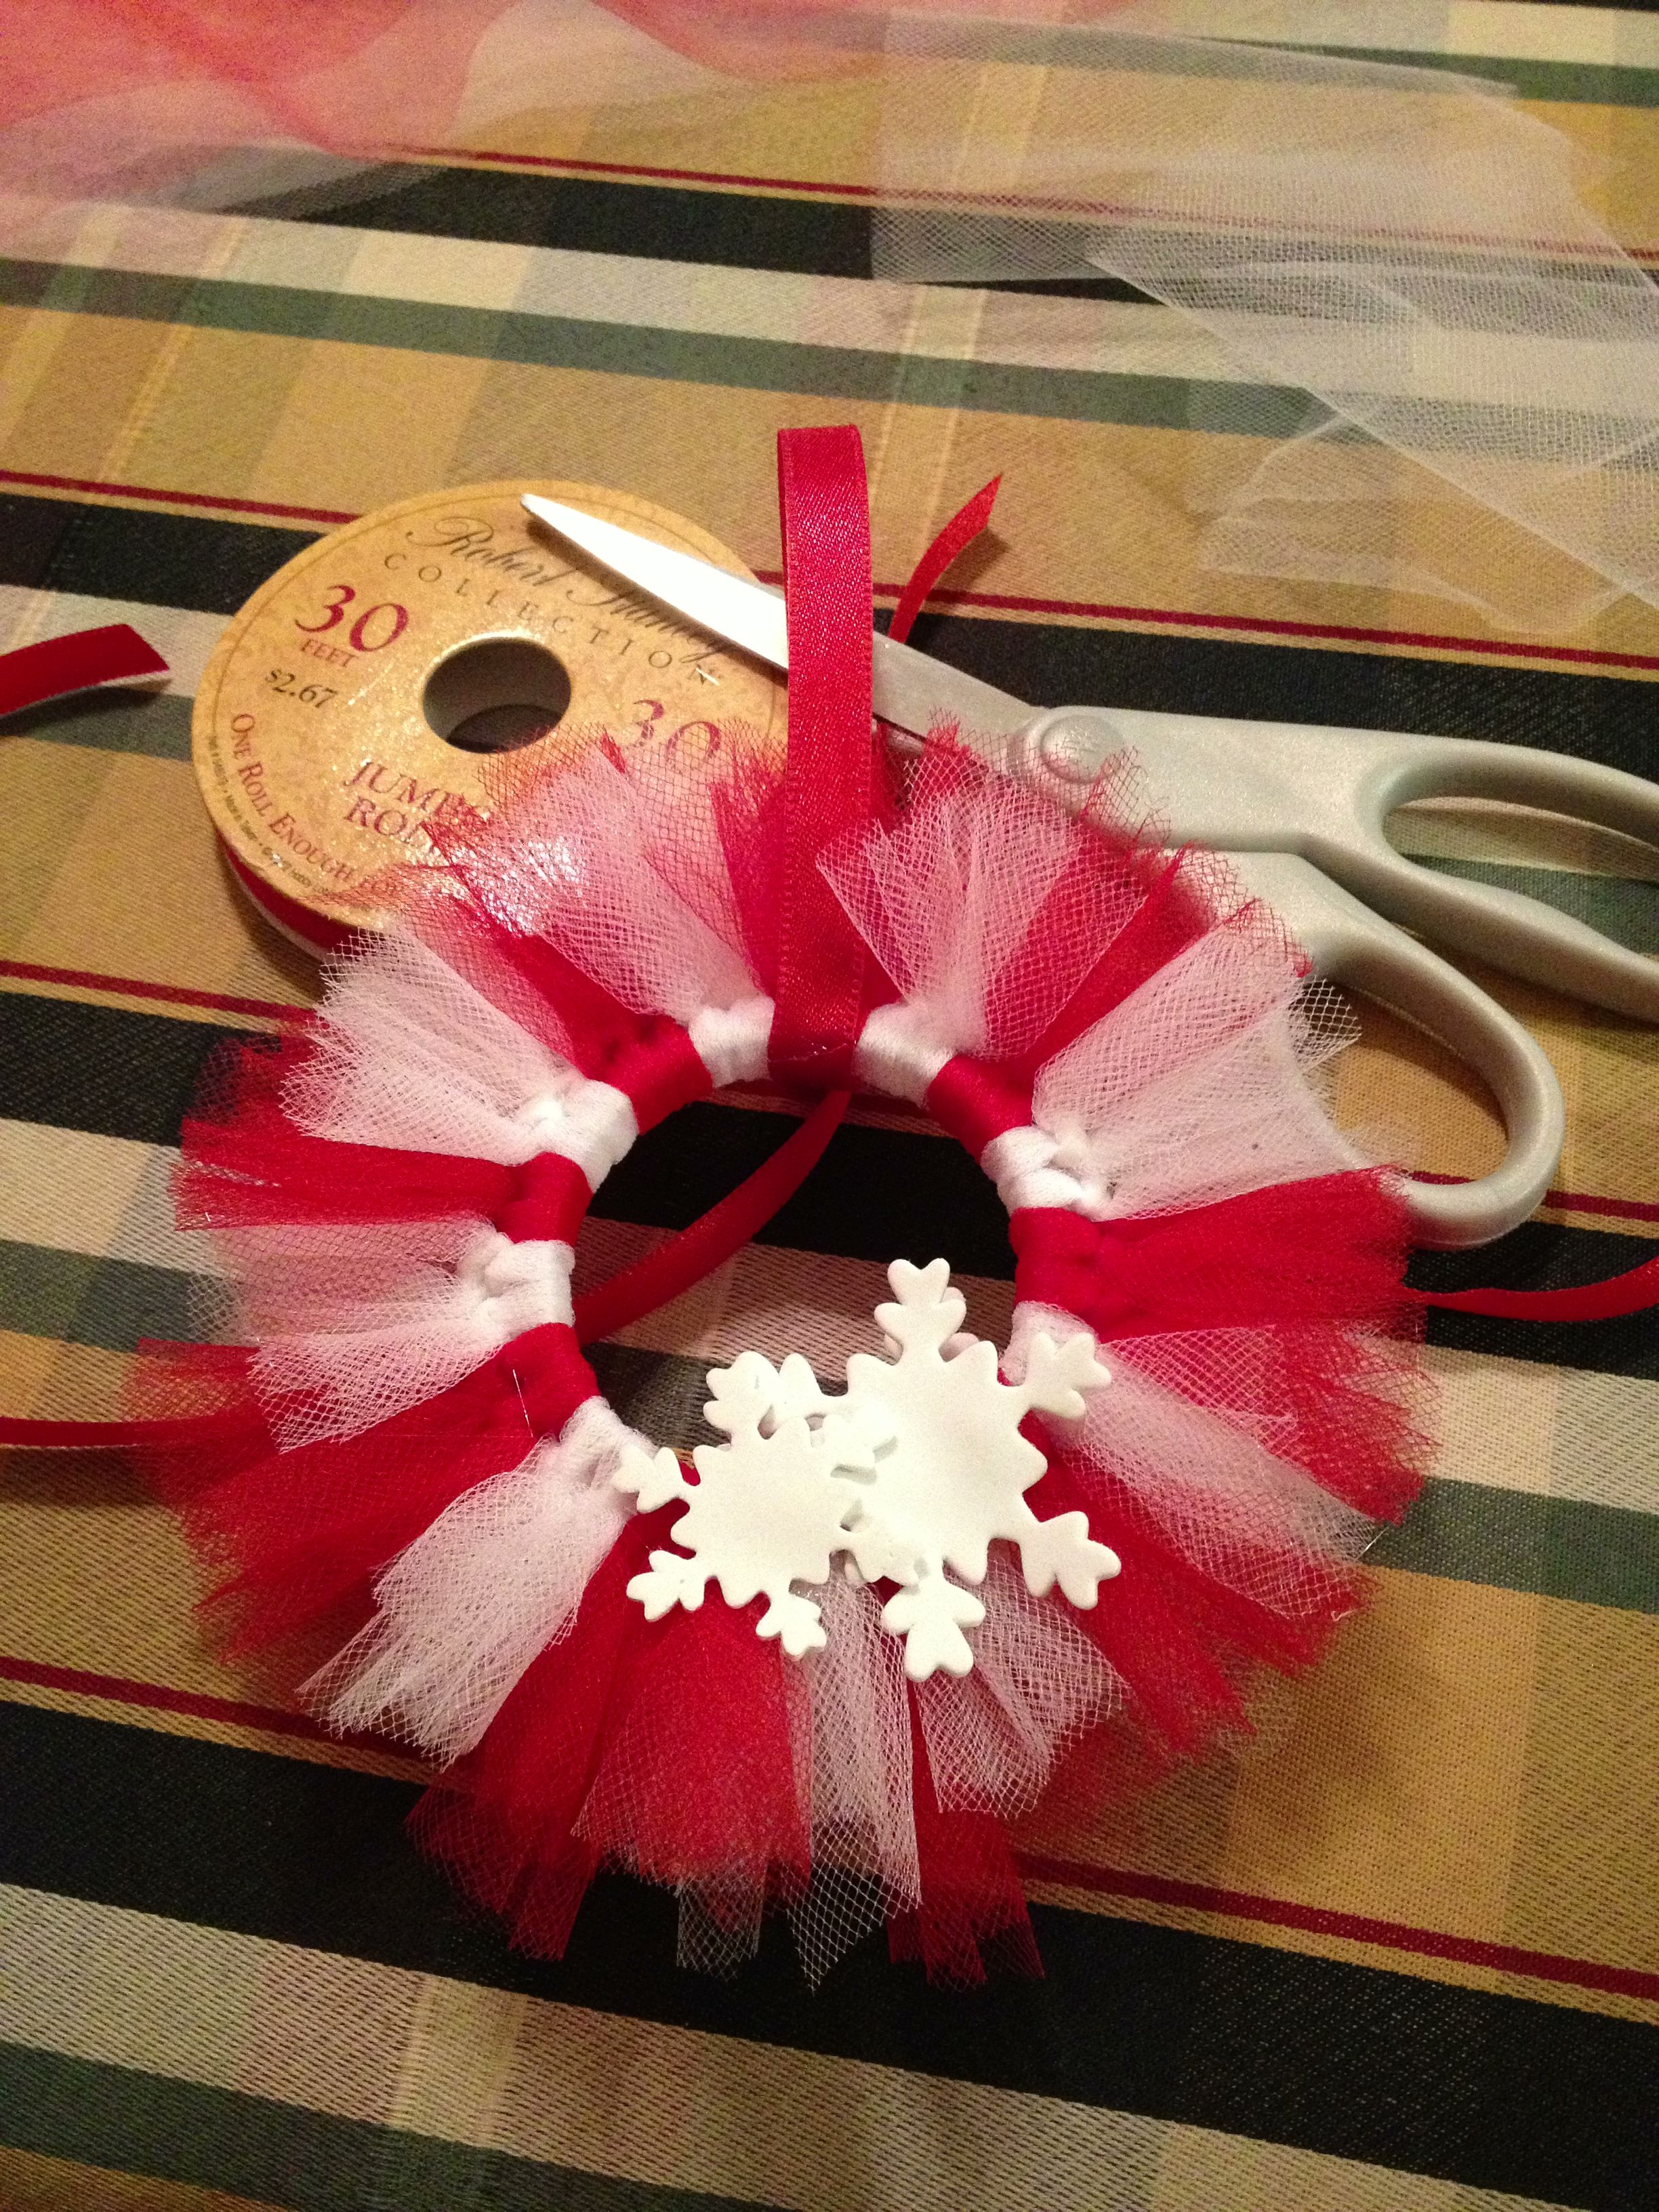 Mini Tutu Wreath Ornaments Made With Shower Curtain Rings